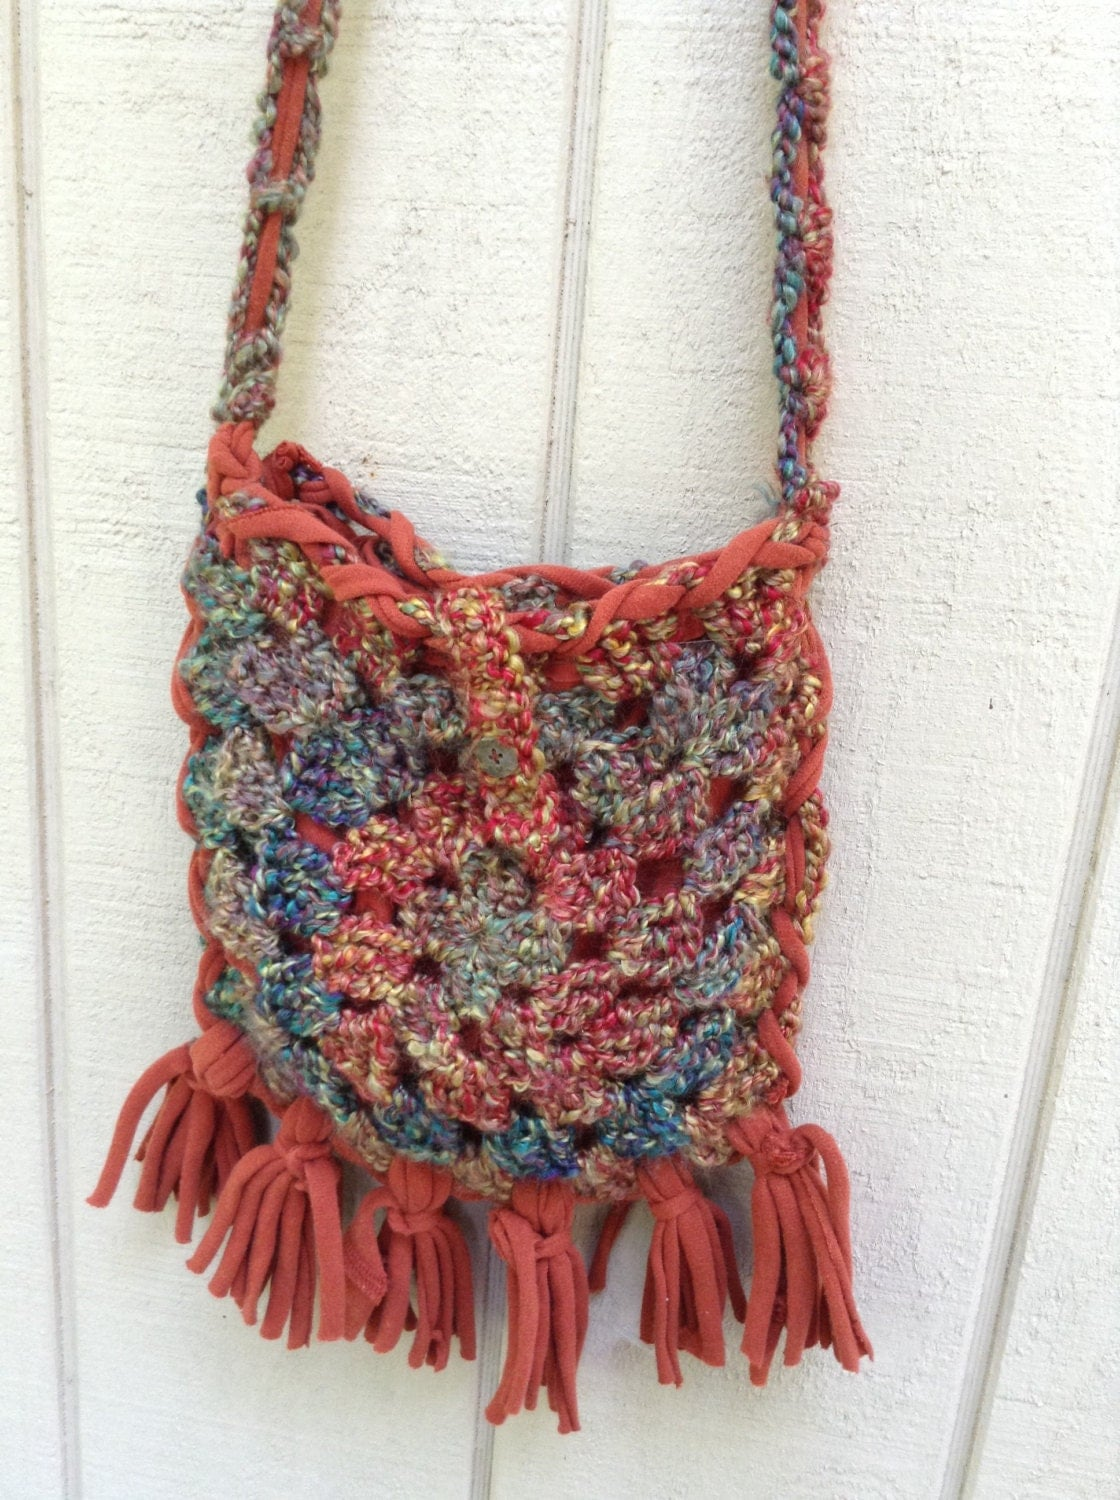 Crochet Boho Bag : Boho crochet and upcycled crossbody bag / by PursenalIssues